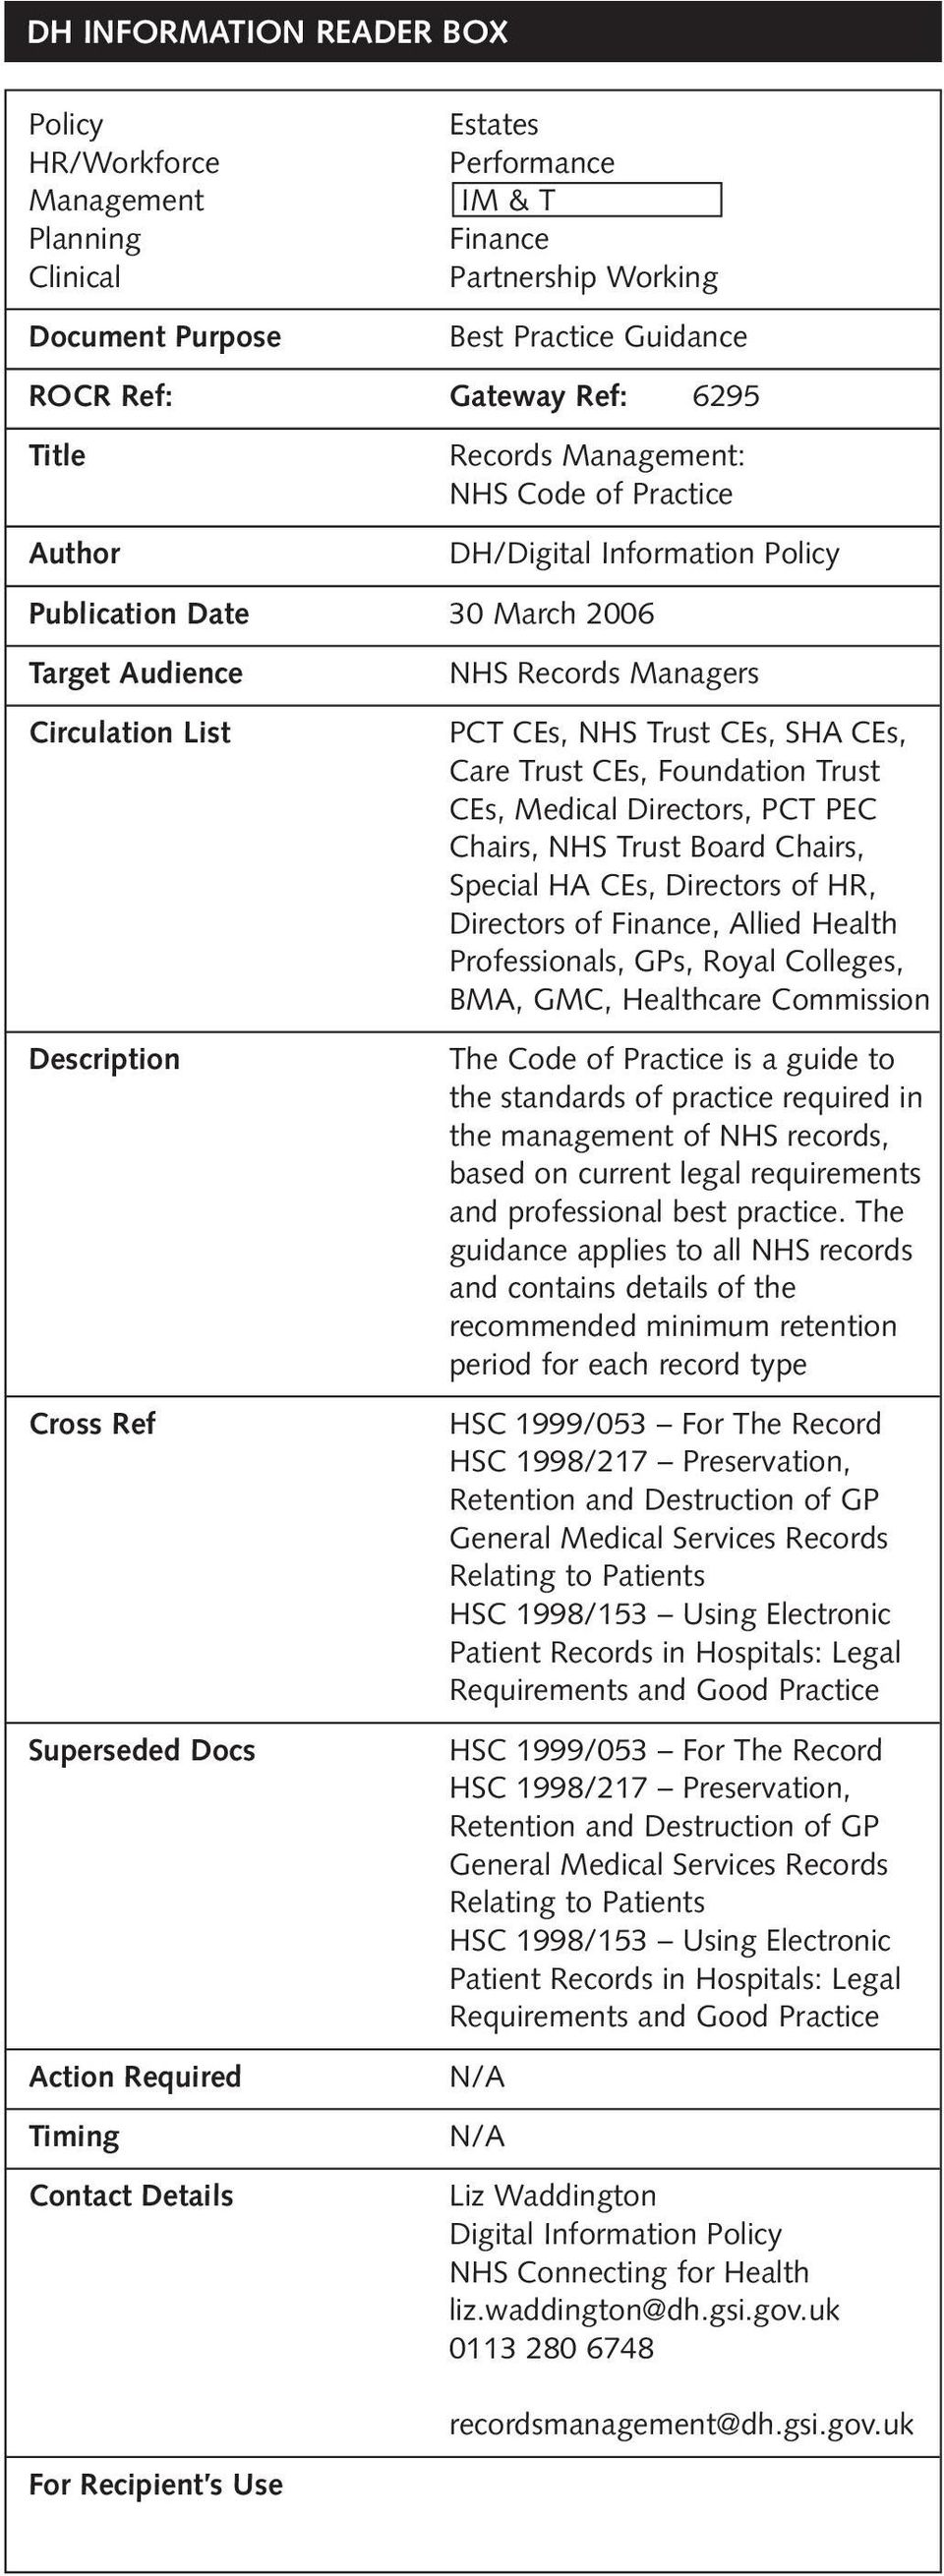 Required Timing Contact Details For Recipient s Use NHS Records Managers PCT CEs, NHS Trust CEs, SHA CEs, Care Trust CEs, Foundation Trust CEs, Medical Directors, PCT PEC Chairs, NHS Trust Board